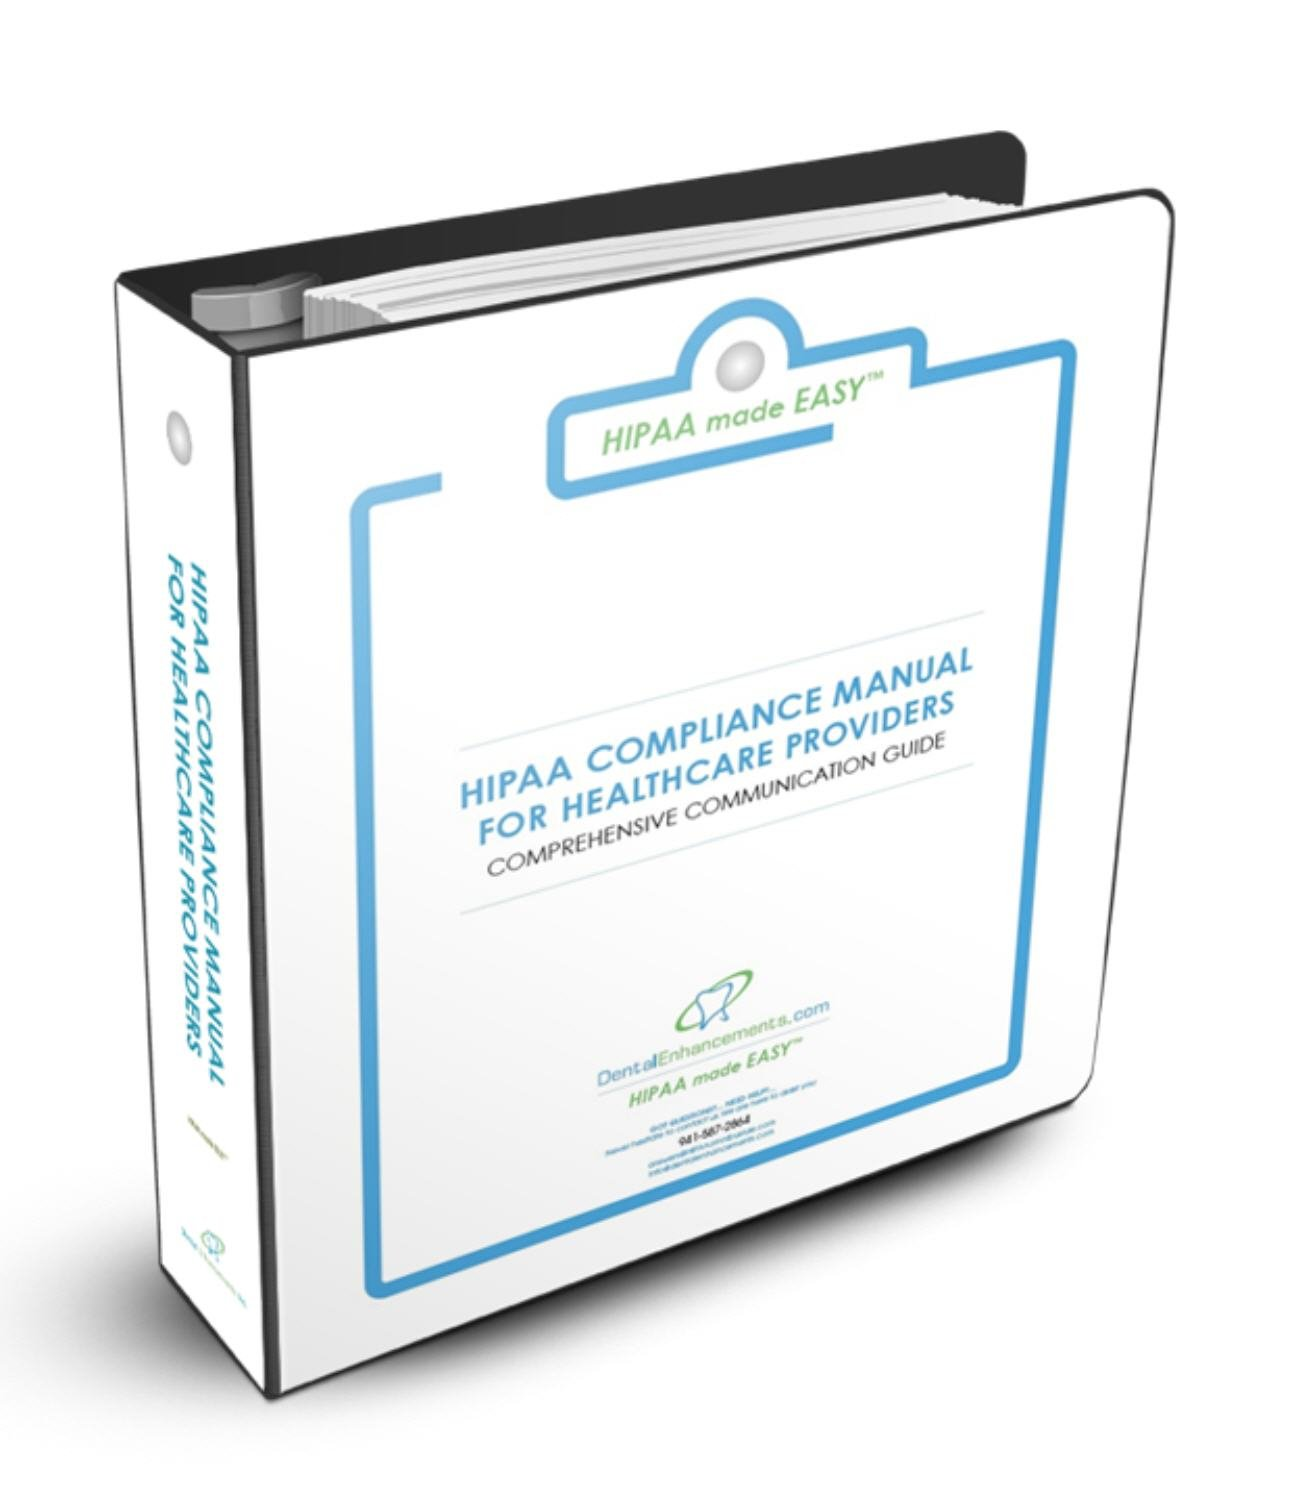 Amazon.com: 2018 HIPAA COMPLETE COMPLIANCE PKG By HIPAA Made EASYTM  includes HIPAA Compliance Manual, Training Video, eForms to Omnibus Rule Hi  Tech ...